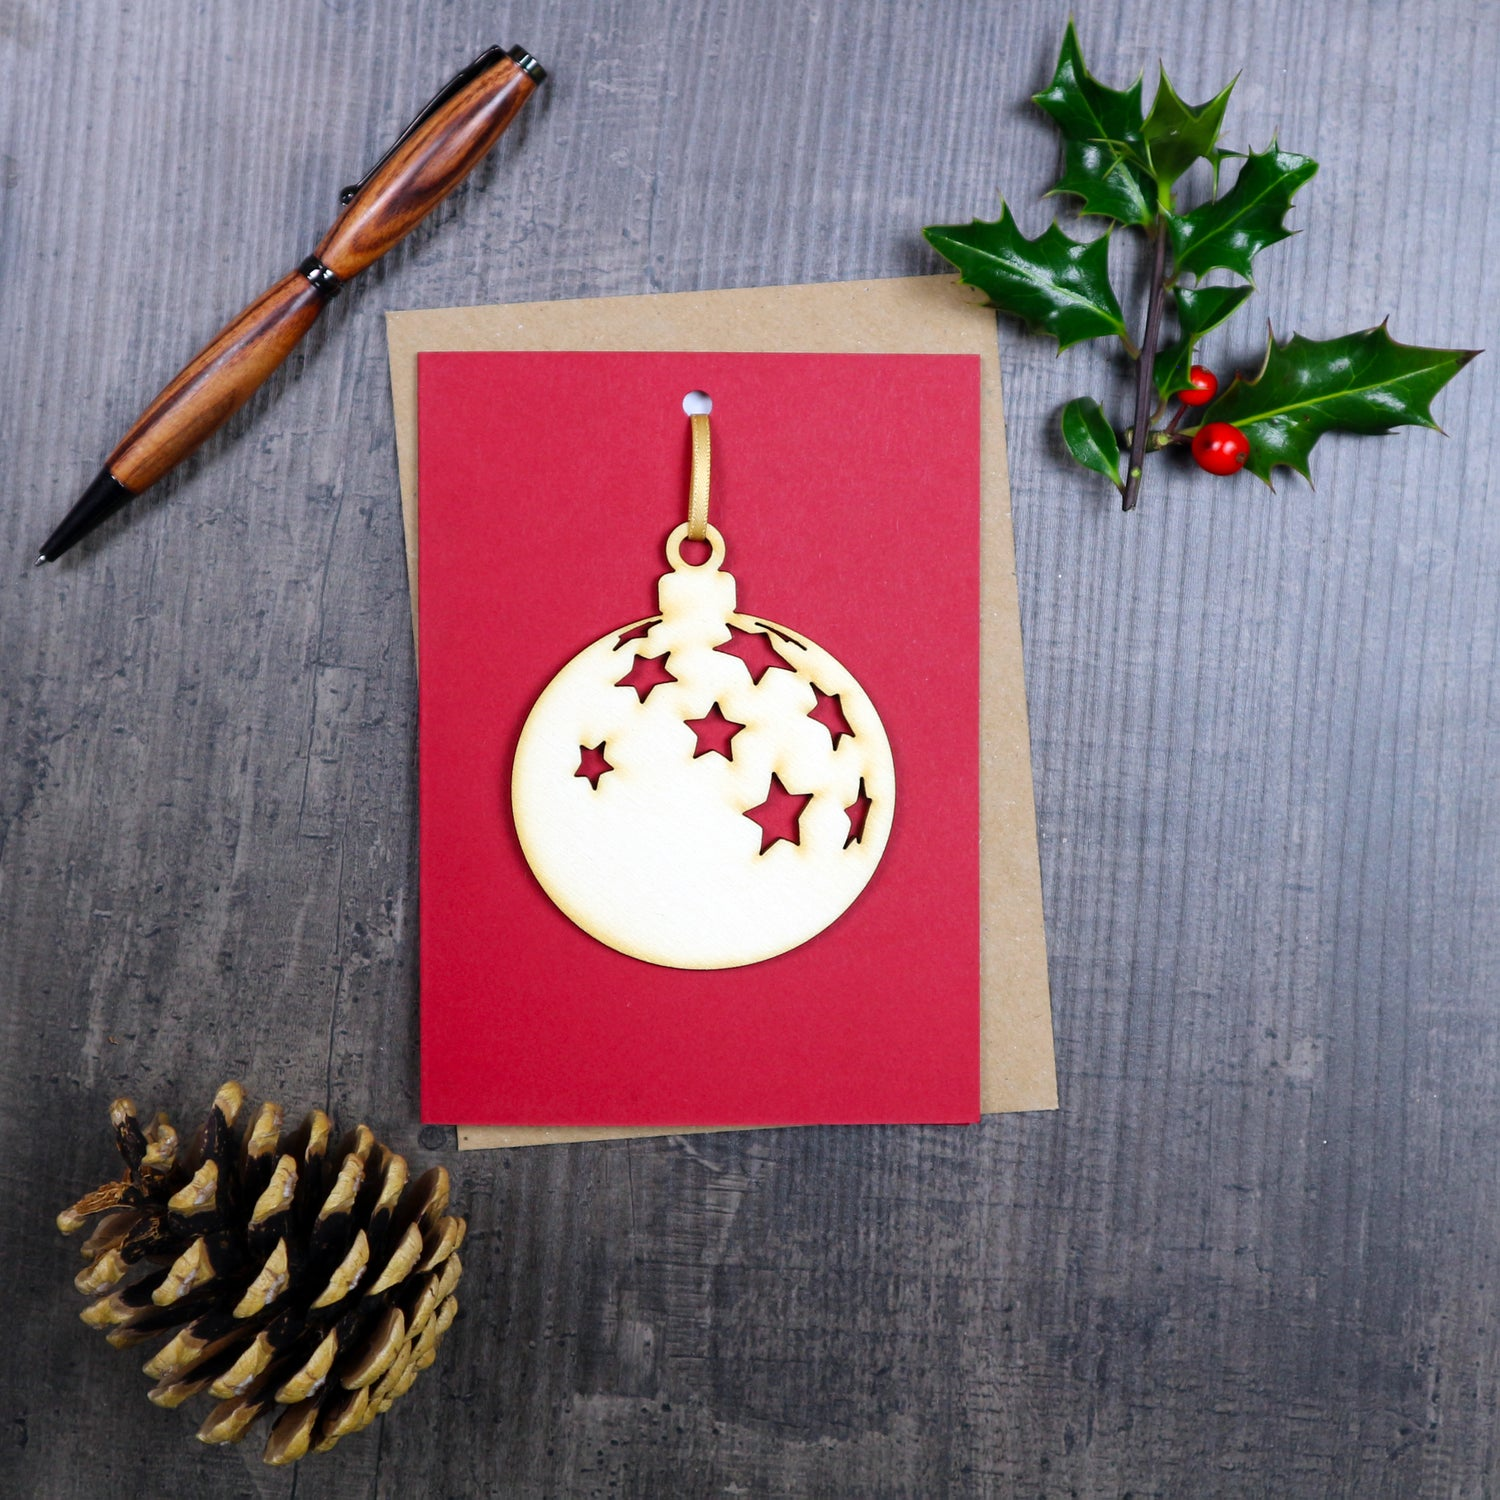 Image of Christmas Card with Woodcut Bauble Decoration